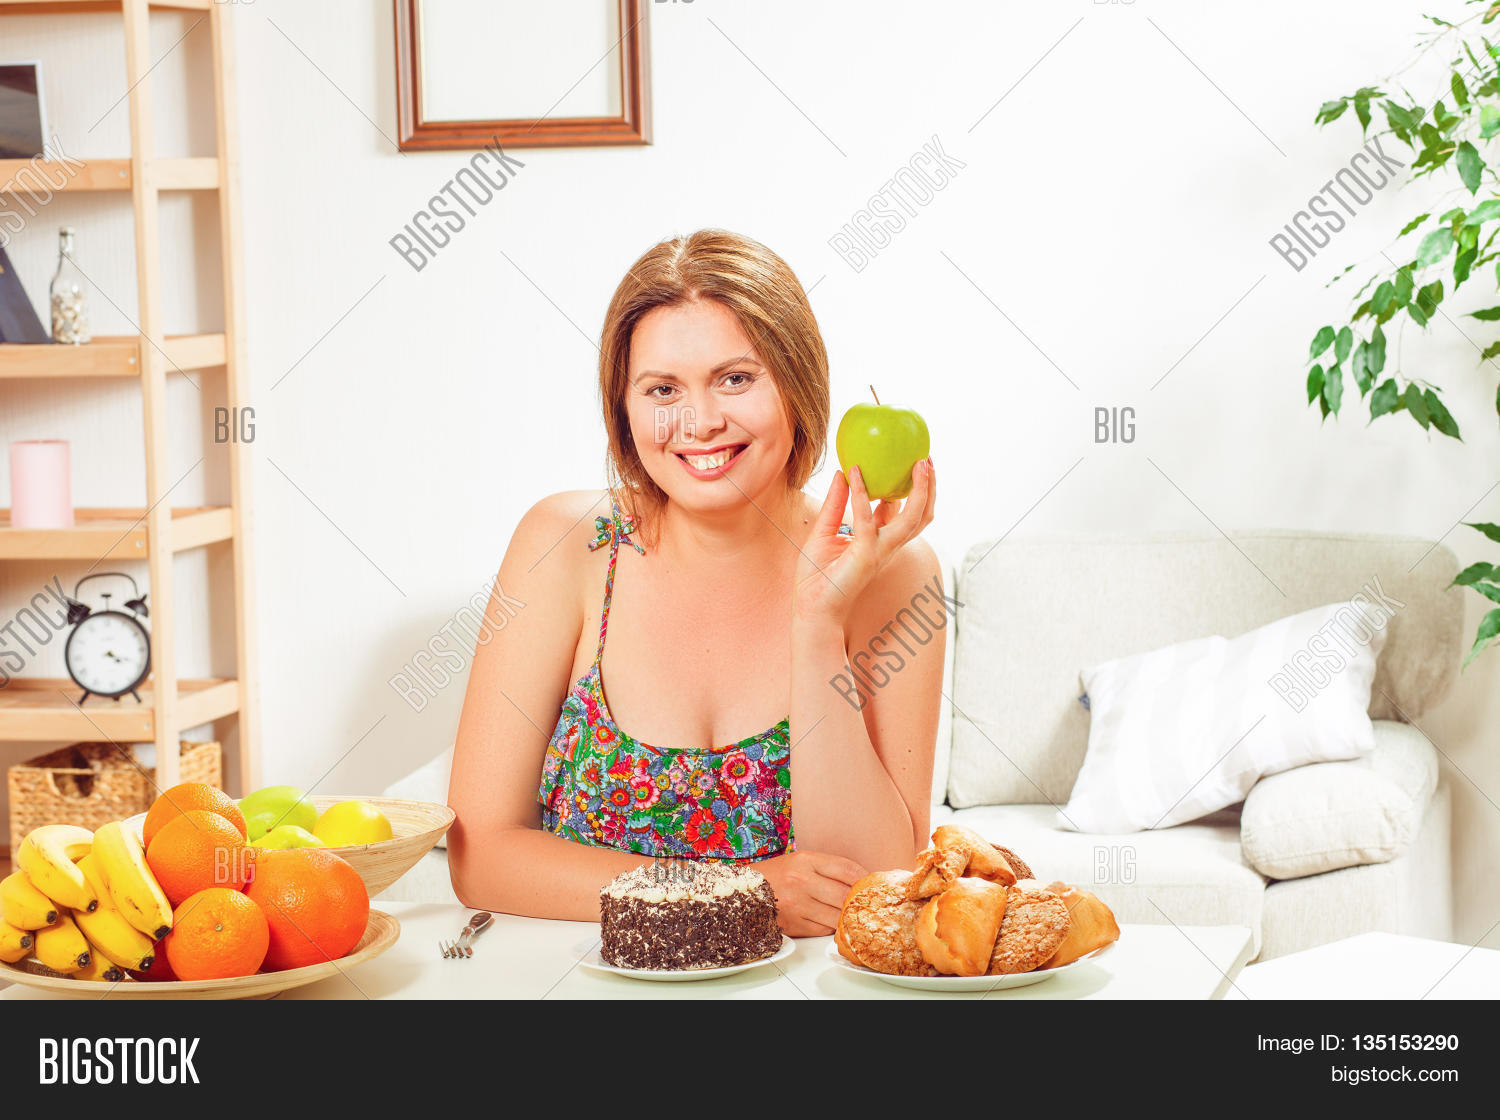 Portrait of toothy smiling fat woman sitting at table and holding green apple in front of her at home. Diet concept.